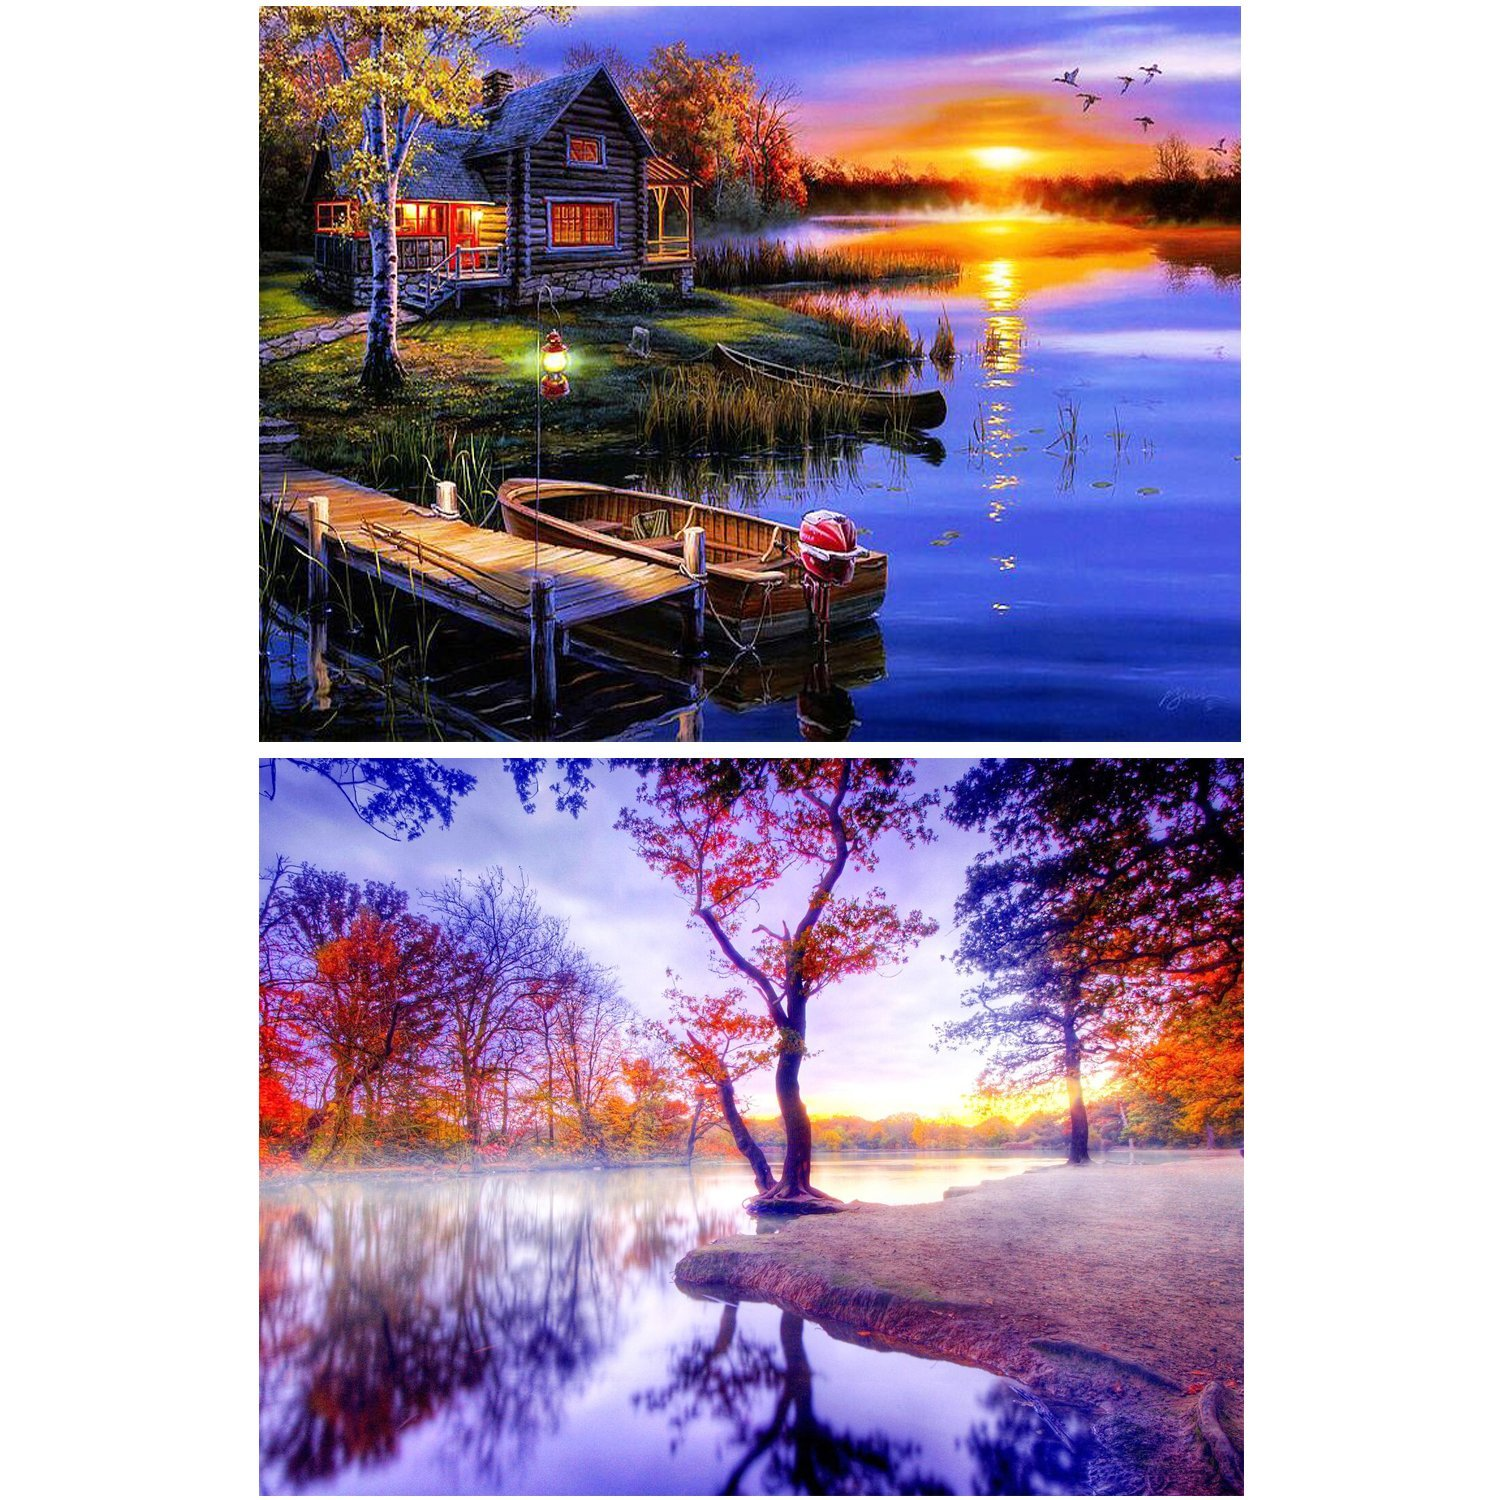 5D DIY Diamond Painting Paint by Numbers Kits for Adult 30x40cm Halloween Full Drill Diamond Embroidery Paintings Pictures Arts Craft for Home Decoration by INFELING